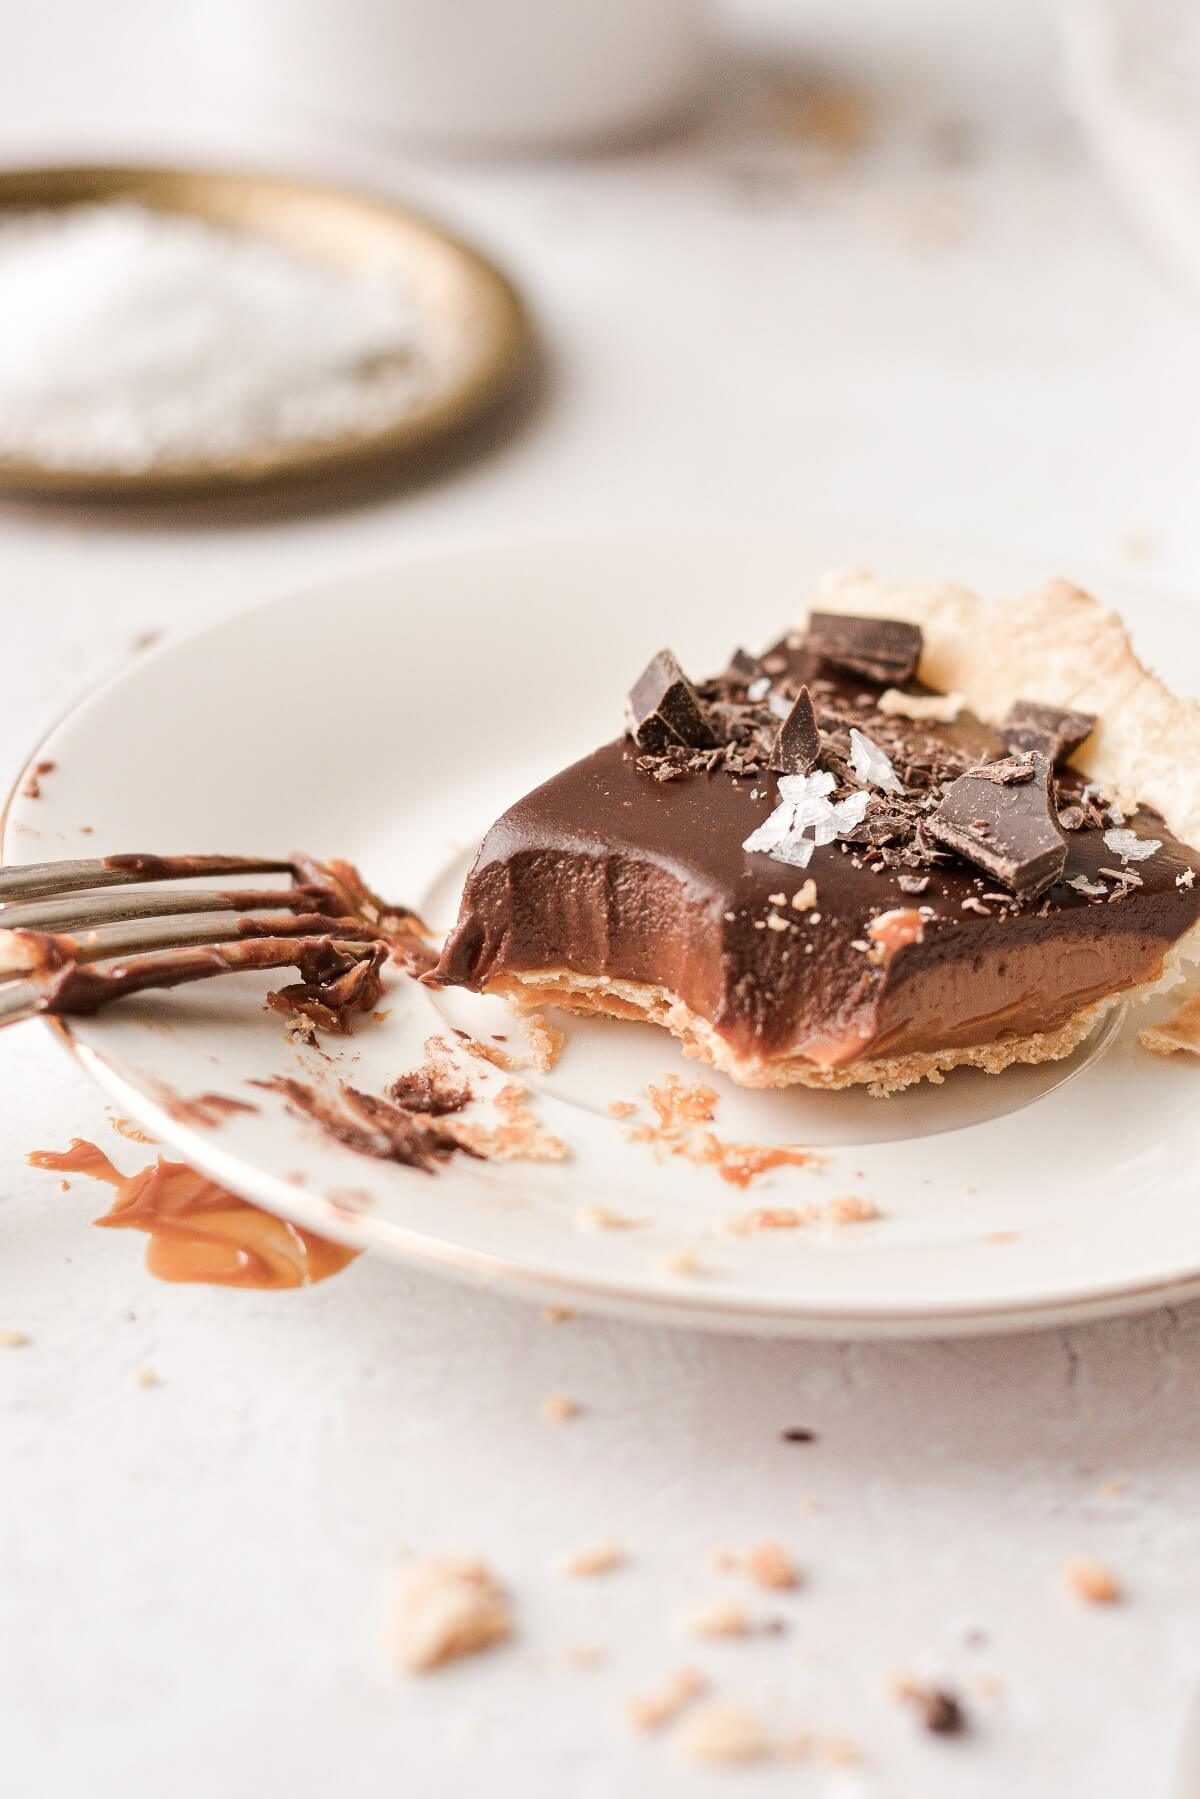 A slice of chocolate caramel tart with a bite taken.